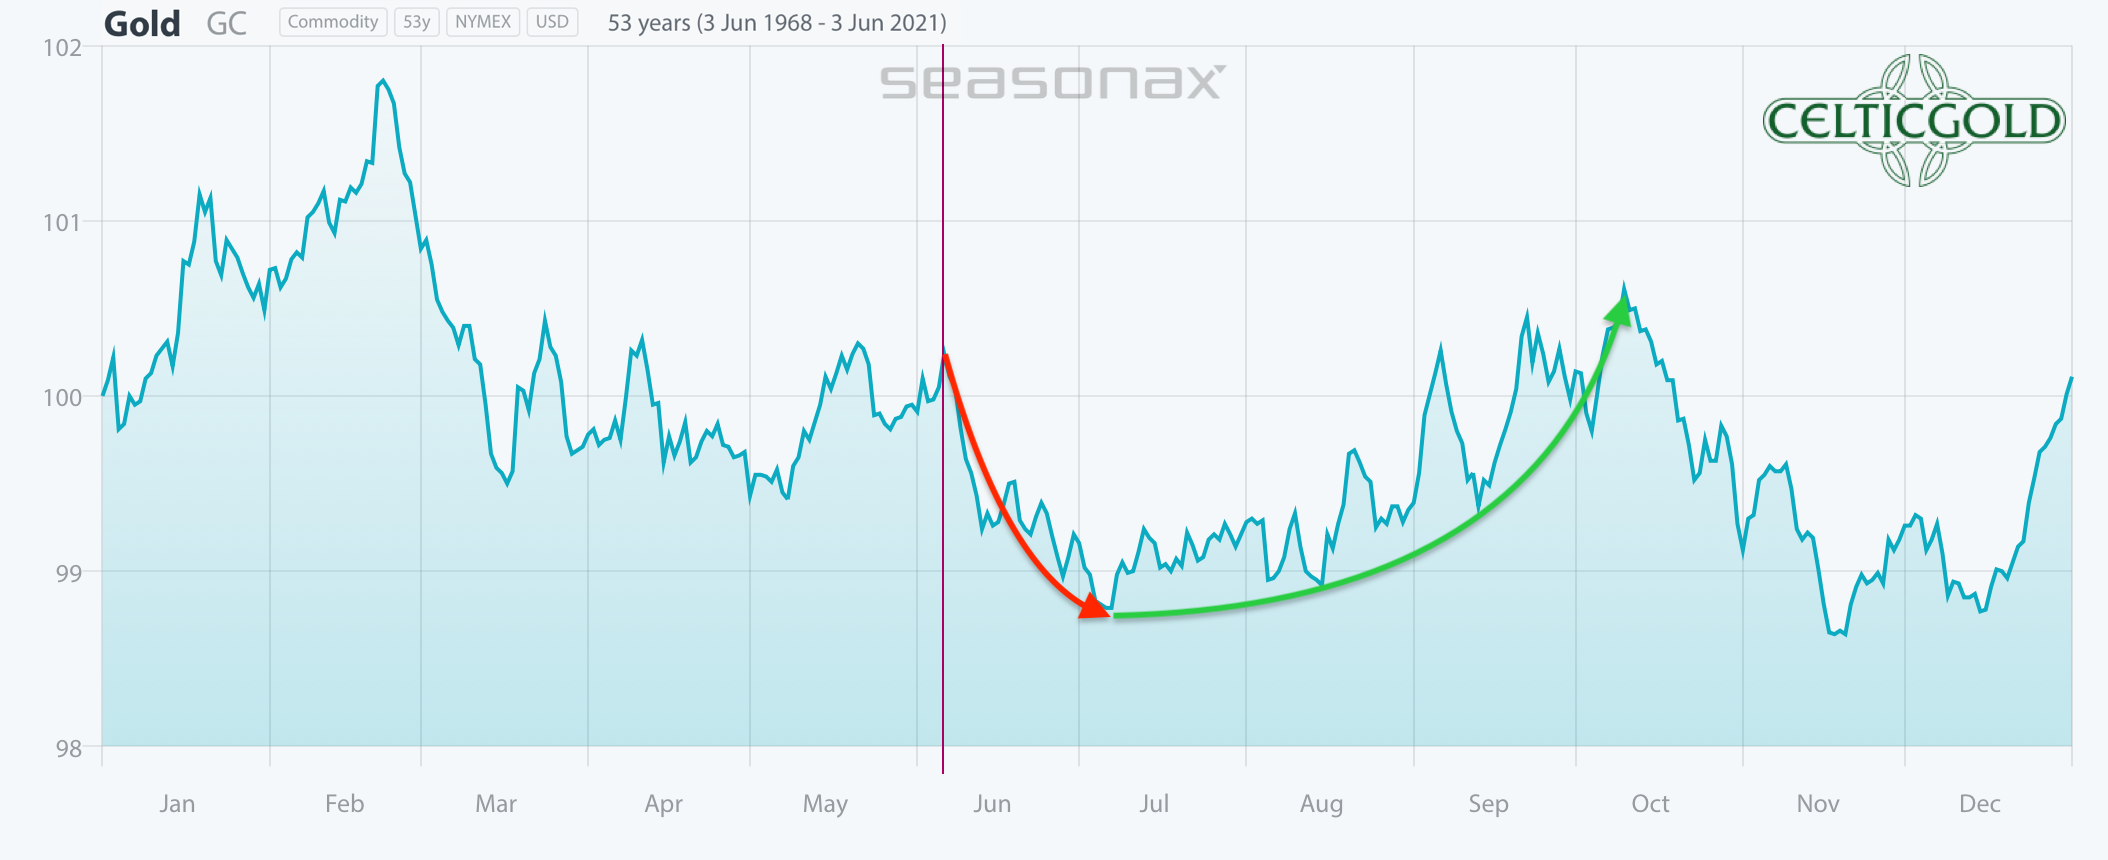 Seasonality for Gold as of April 11th, 2021. Source: Seasonax. Gold - Healthy Pullback or Escalation Until Midsummer?